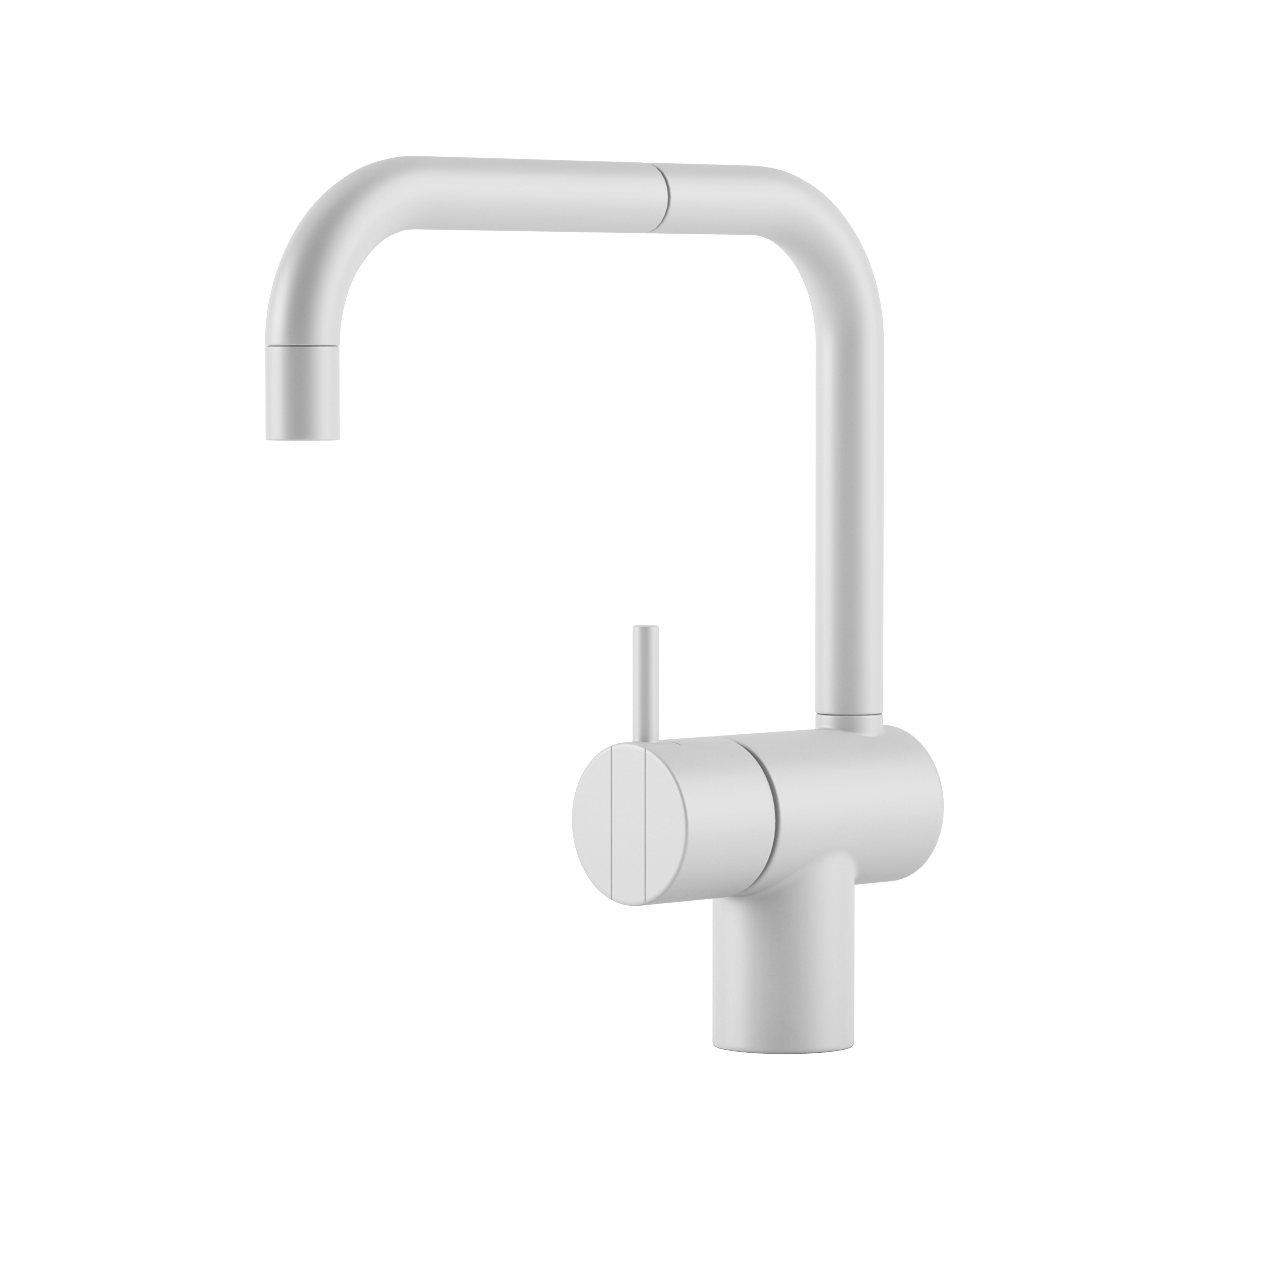 KV1 Kitchen Mixer Tap by Vola